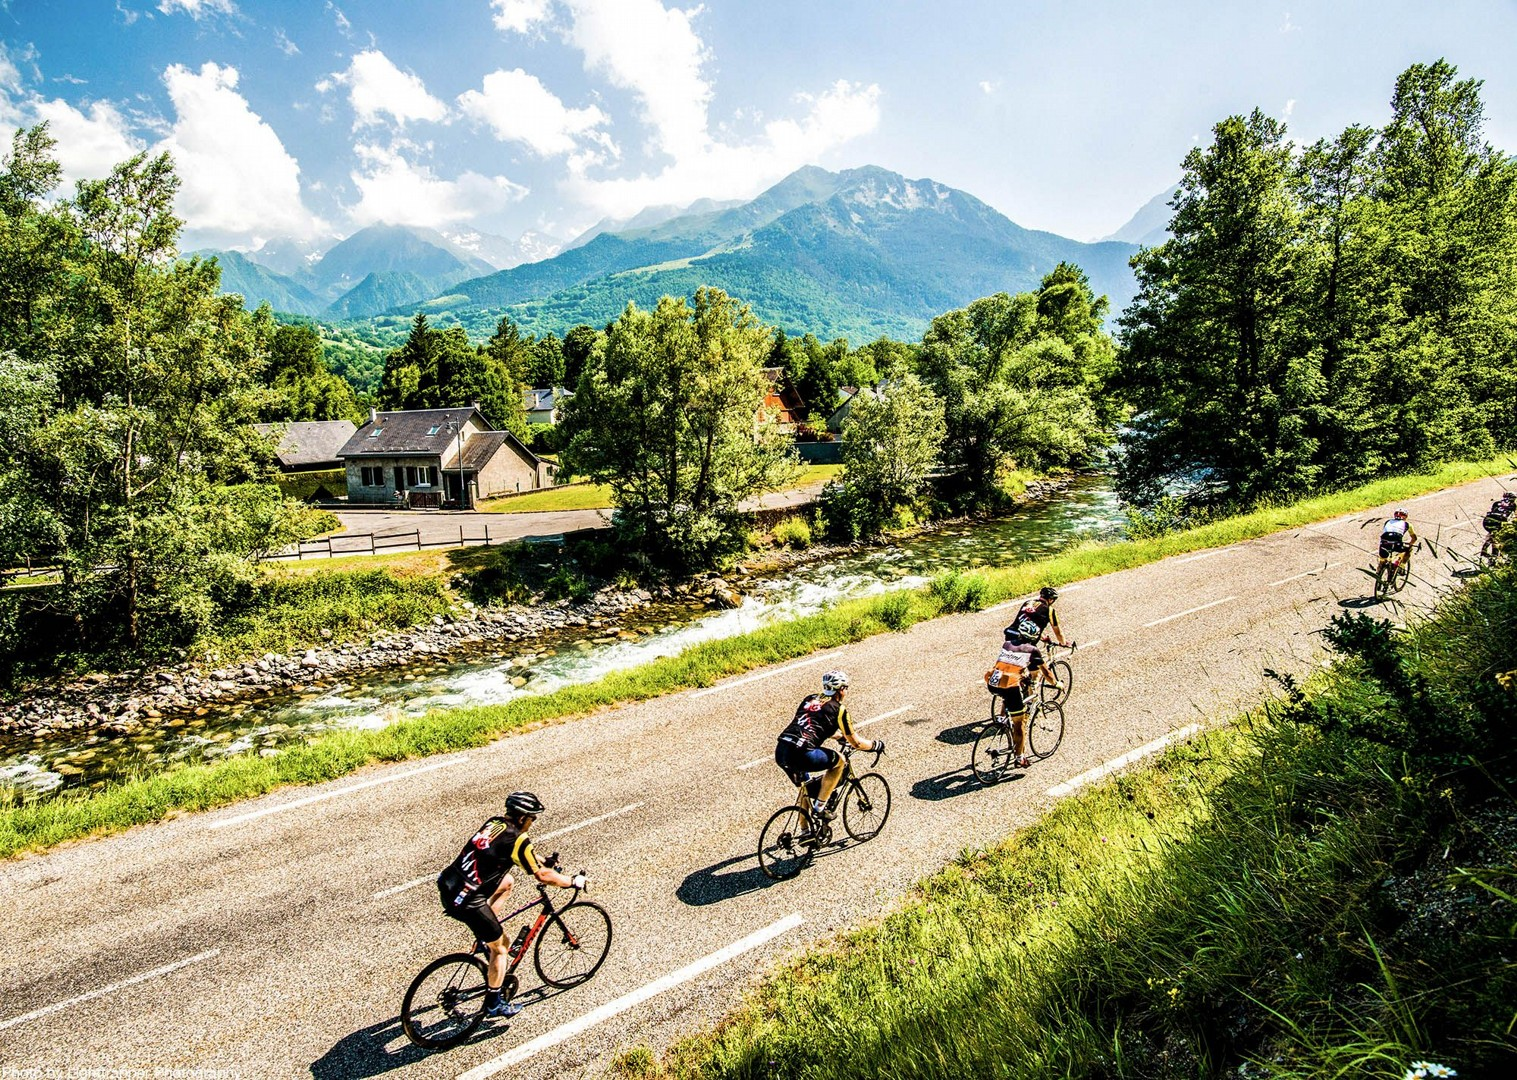 french-mountains-cycling-holiday-guided-france-bikes.jpg - France - Pyrenees Fitness Week (Grade 3-4) - Guided Road Cycling Holiday - Road Cycling